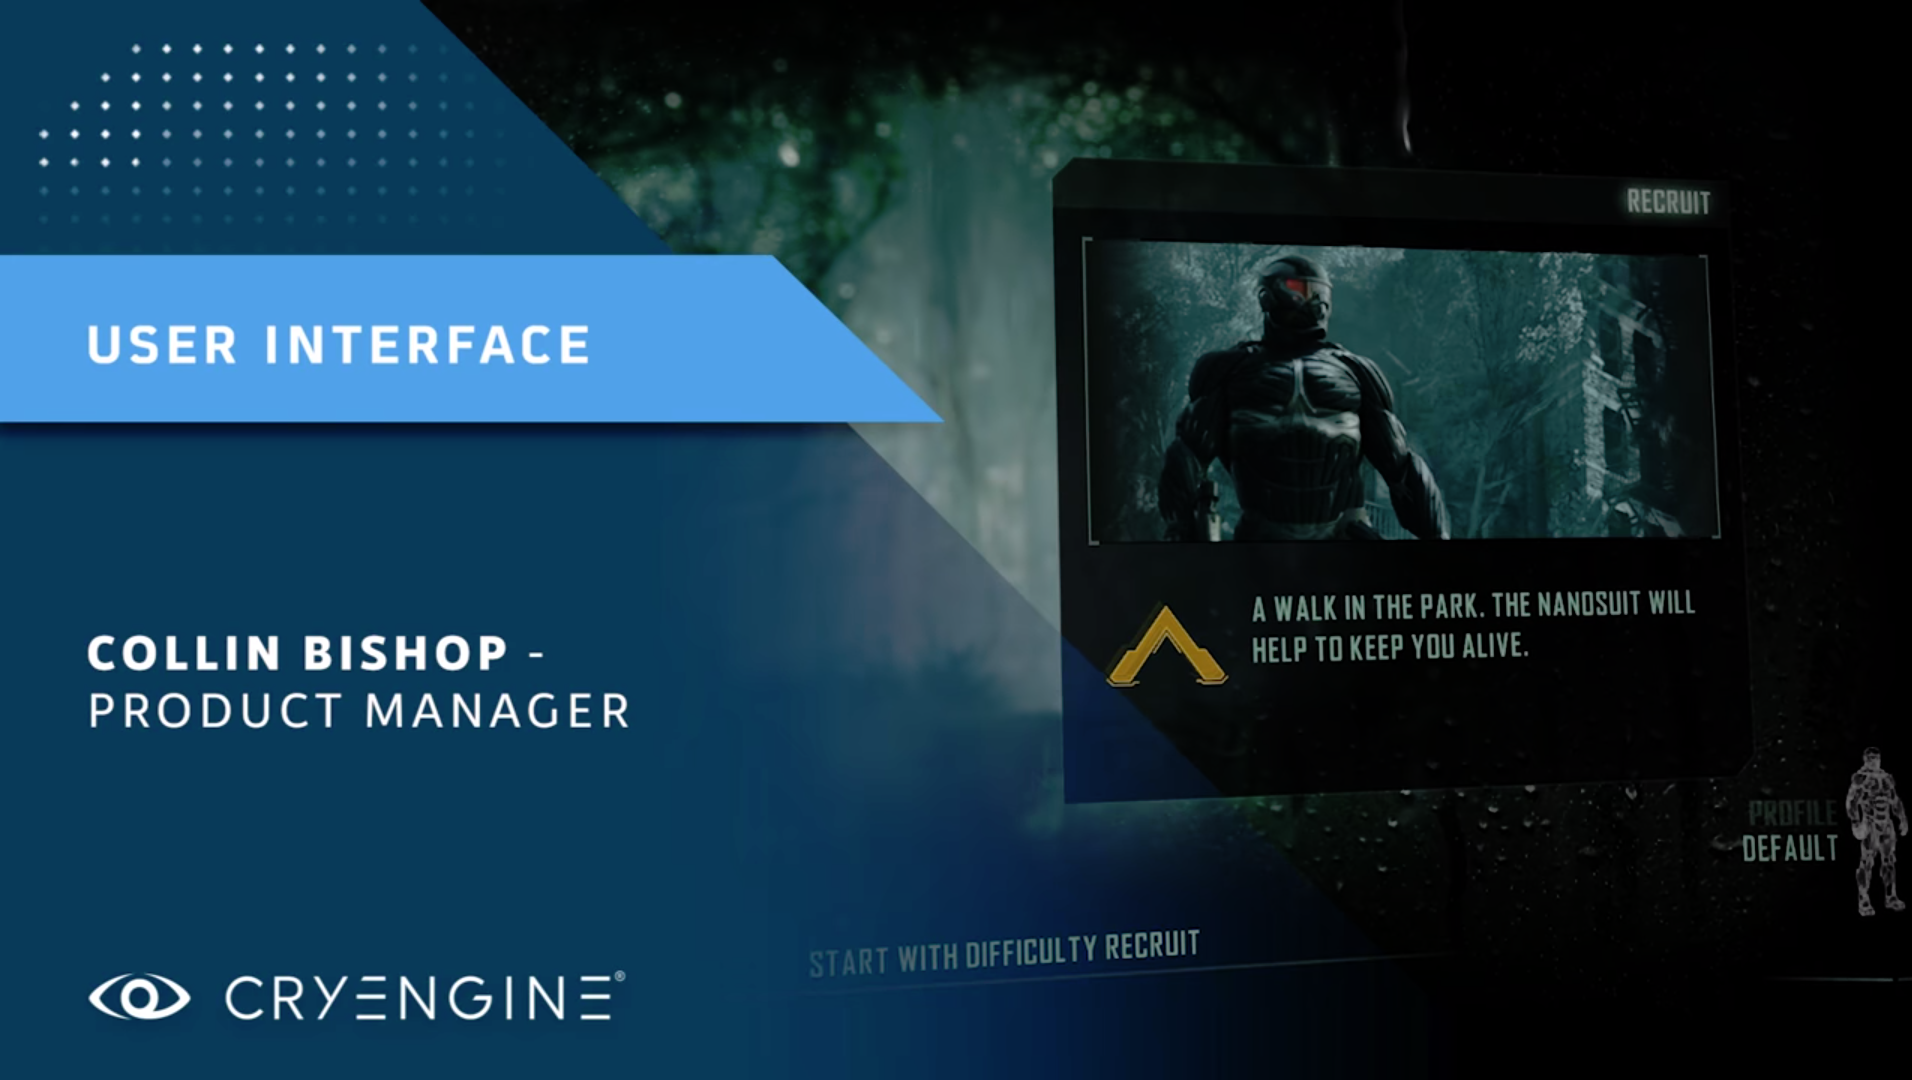 CRYENGINE Master Class: Building UI Using Scaleform